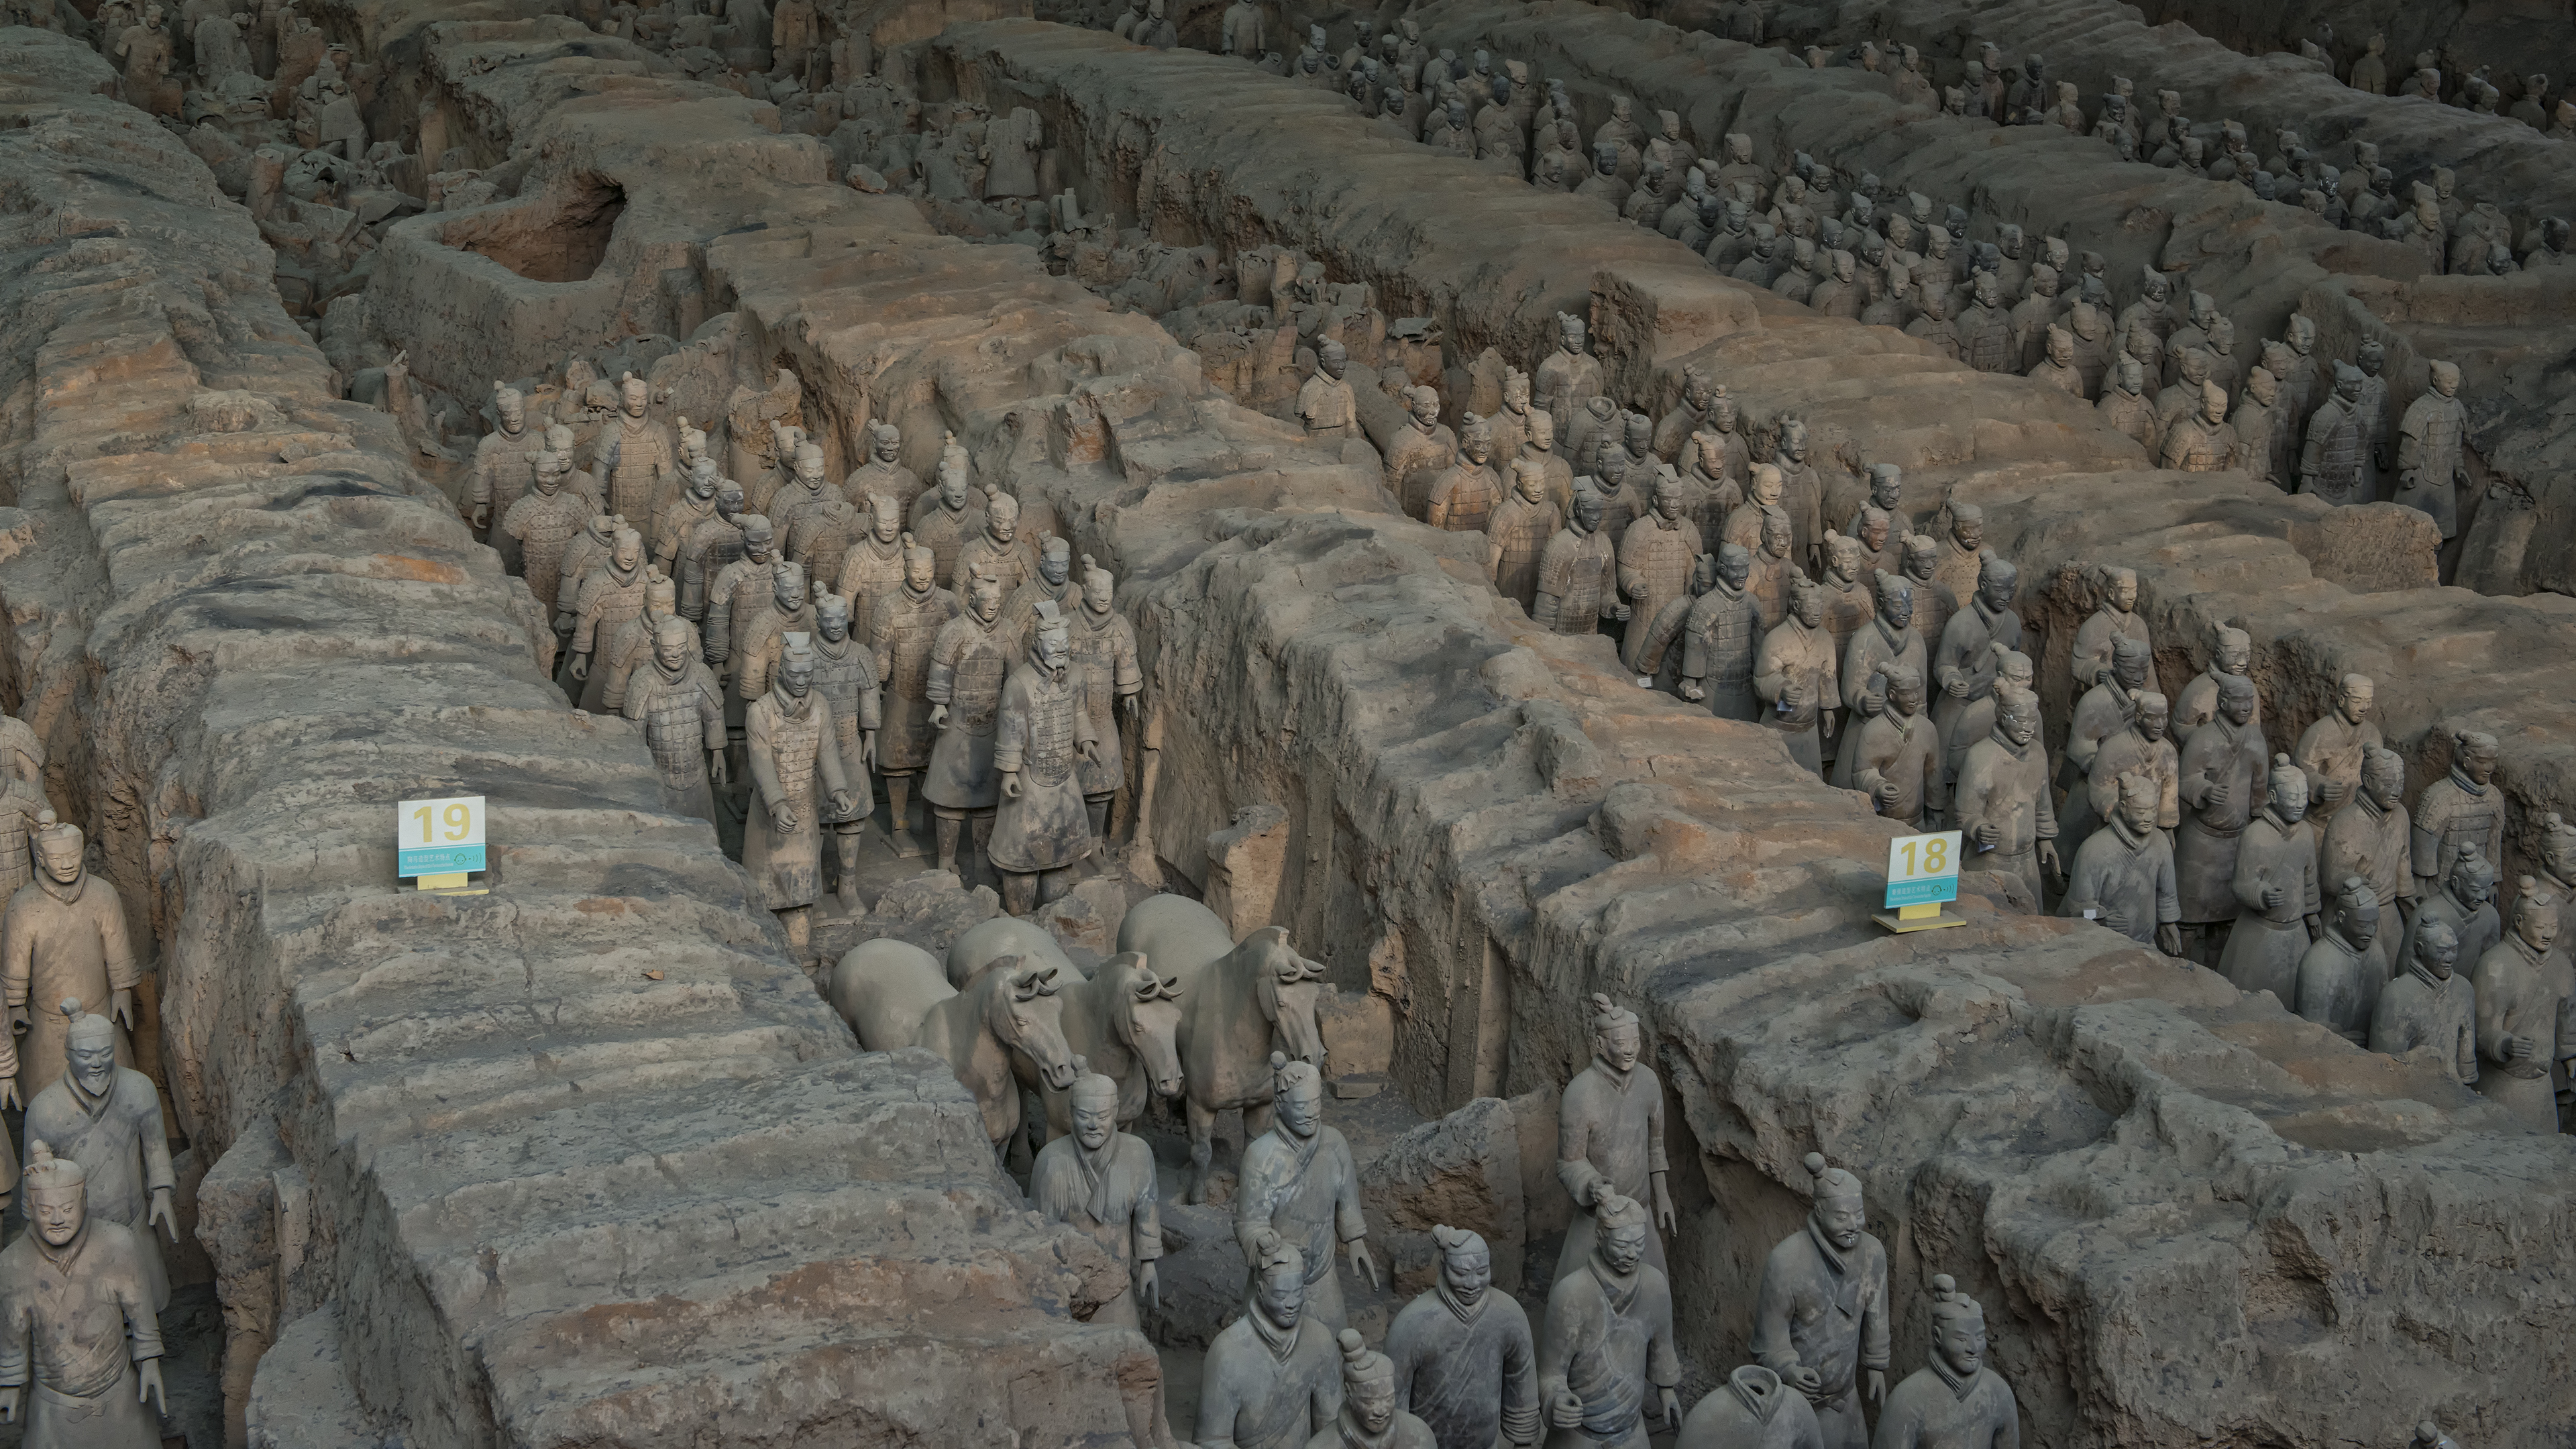 Terra Cotta Warriors in Xian